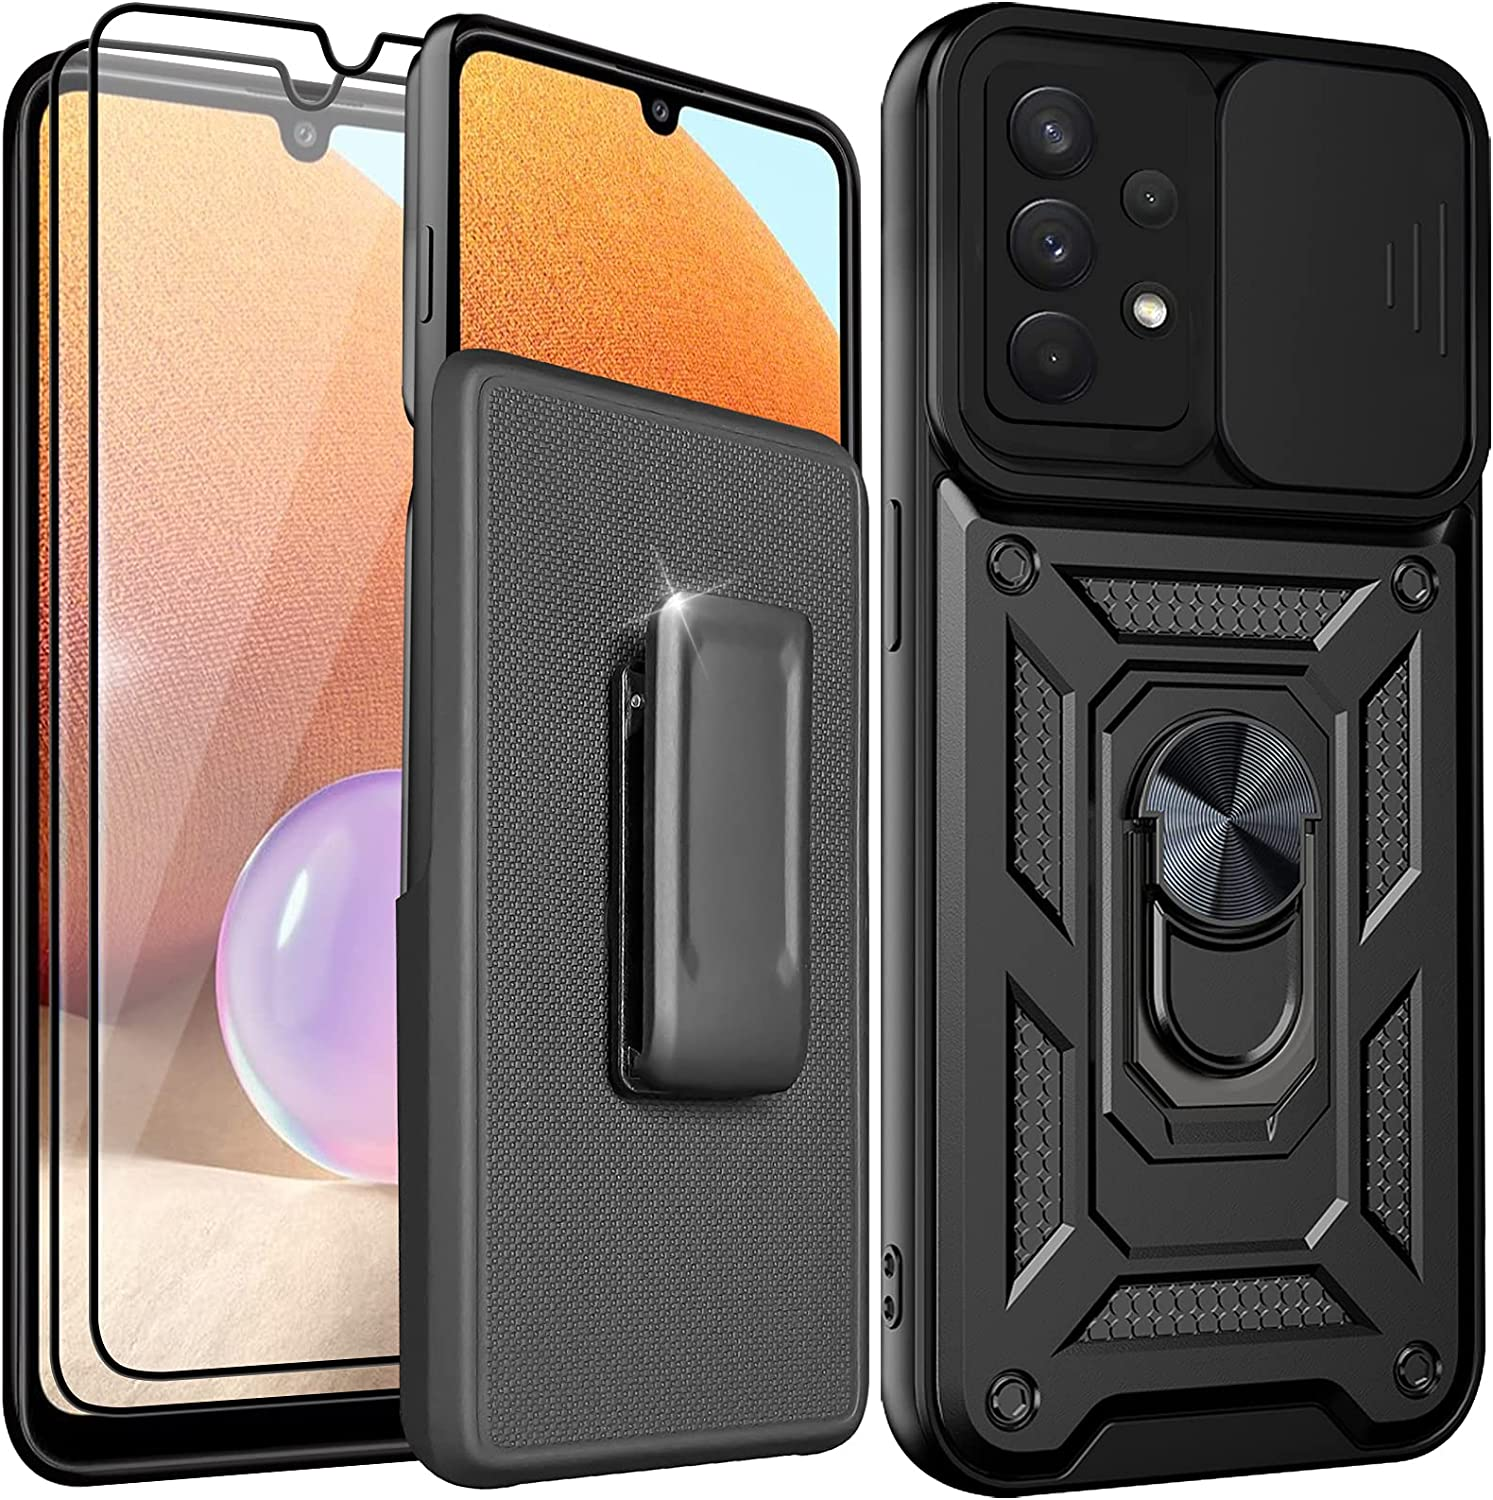 Holster Case for Samsung Galaxy A32 5G with Belt Clip,with Two Screen Protector,Camera Cover & Kickstand,Slide Lens Protection,360°Rotate Ring Stand,Car Mount Supported(Black, Galaxy A32 5G)